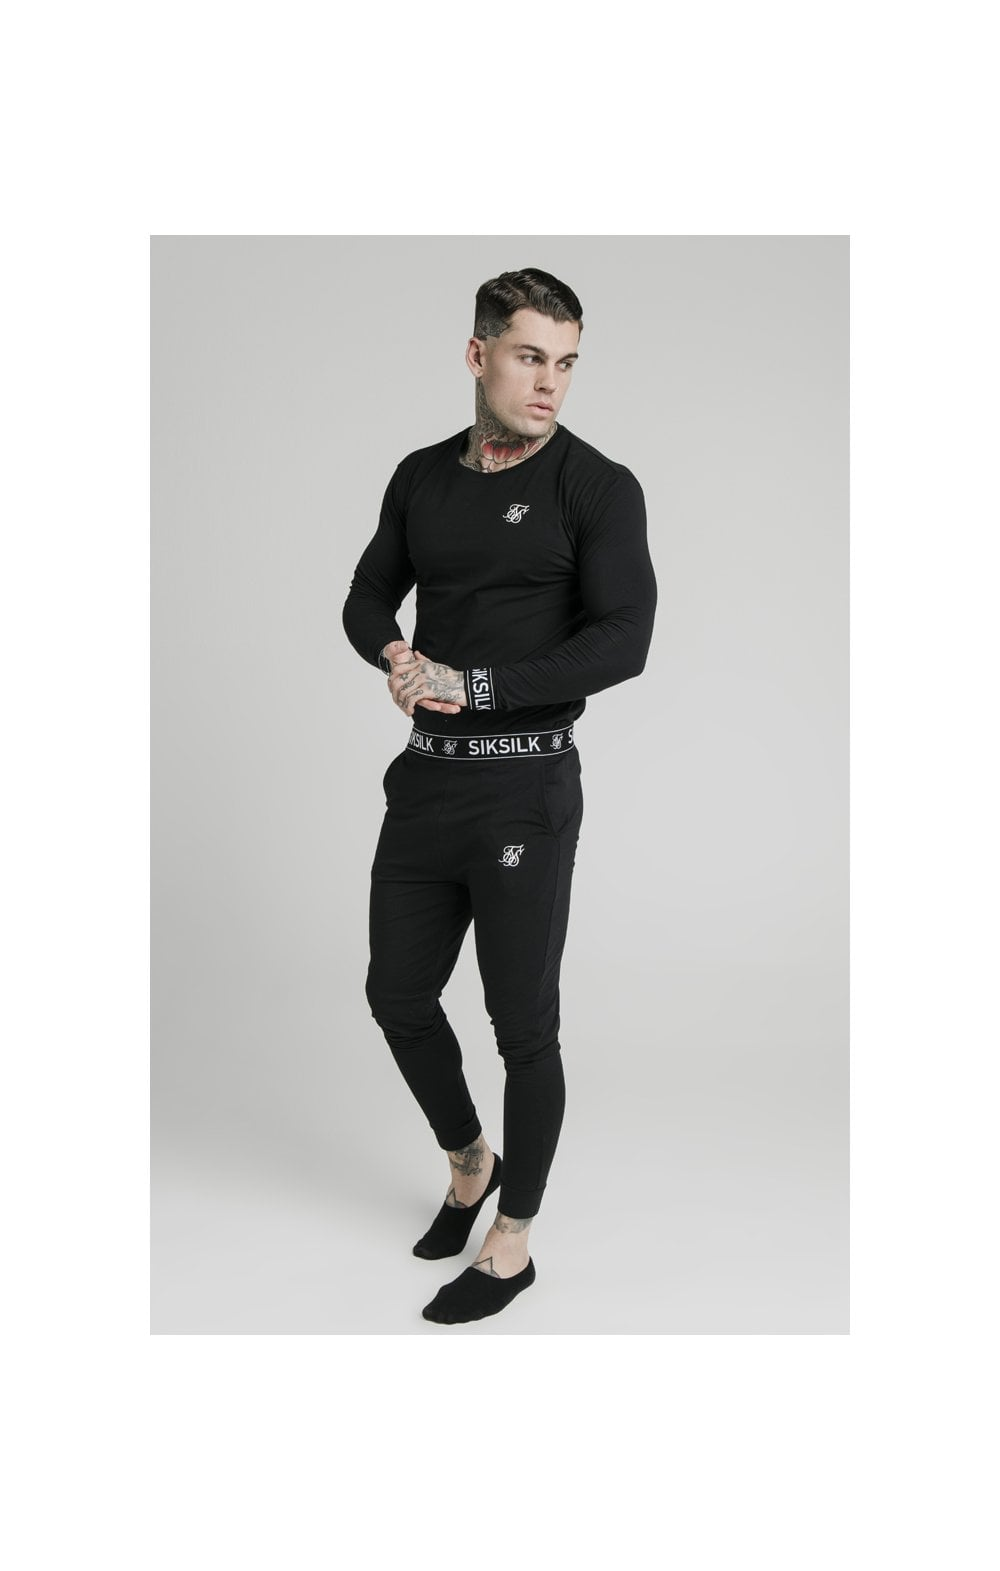 SikSilk Lounge Pants – Black (4)